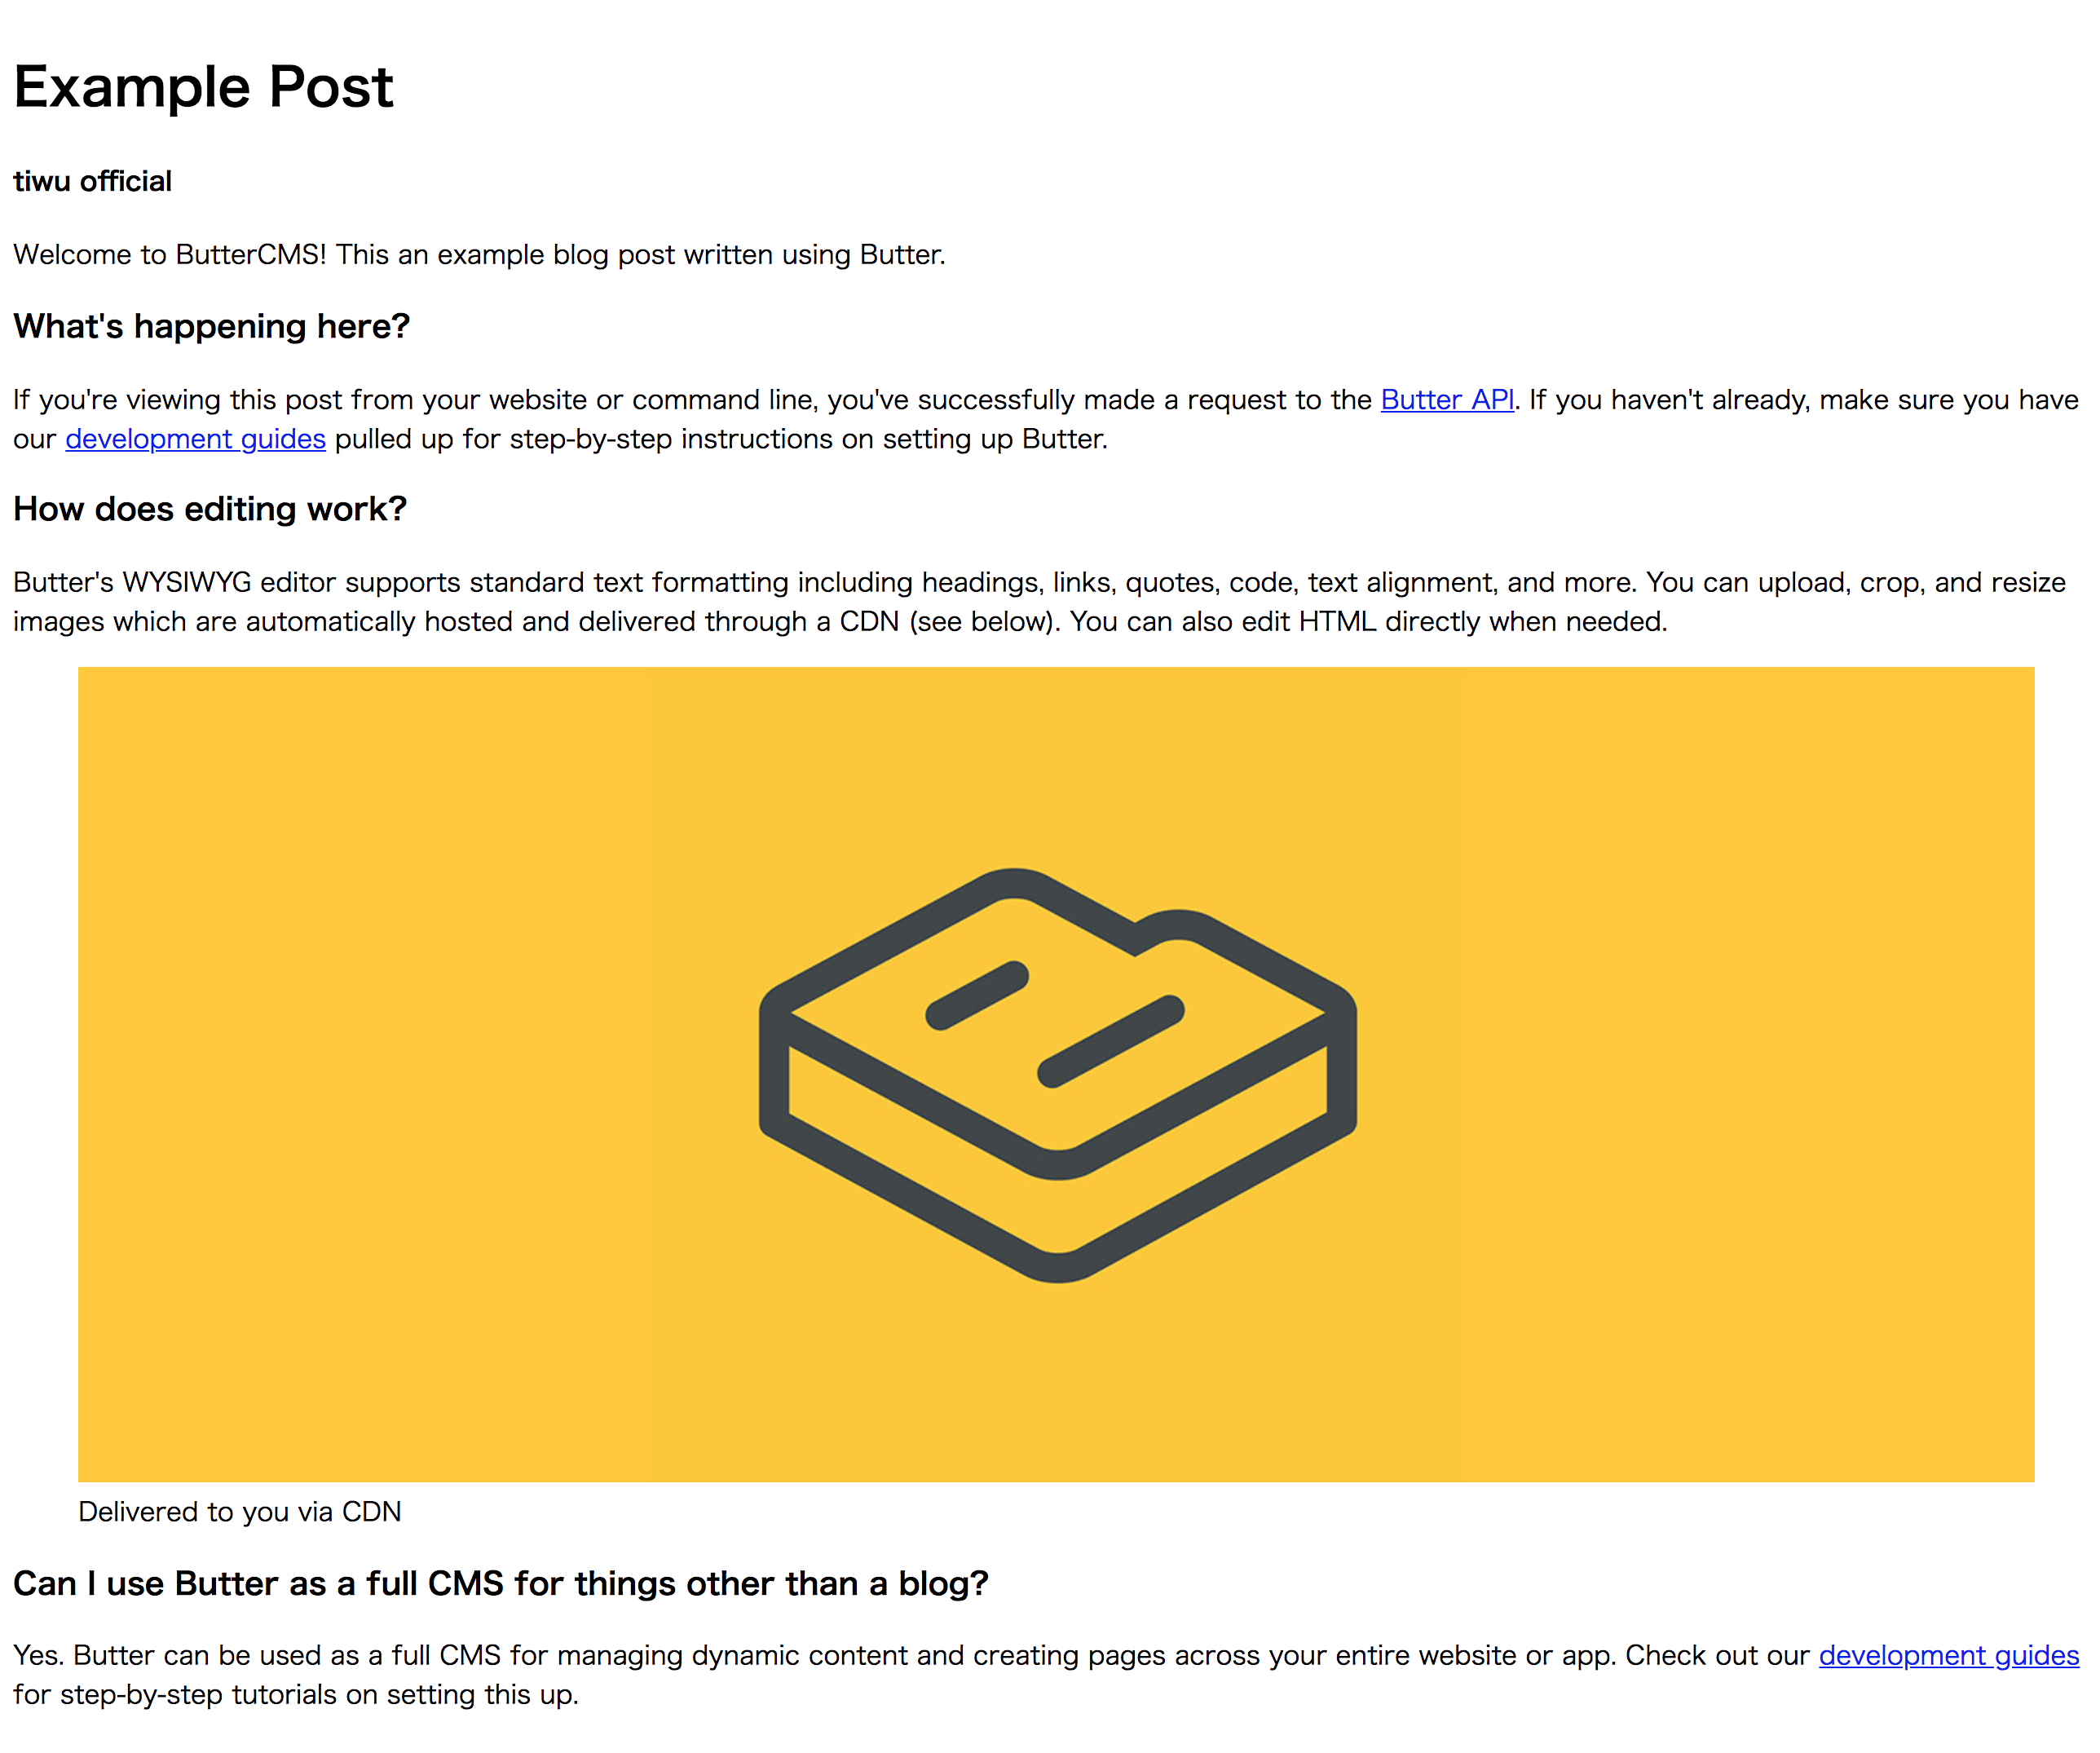 screencapture-localhost-8080-blog-example-post-2018-05-31-20_51_29.png